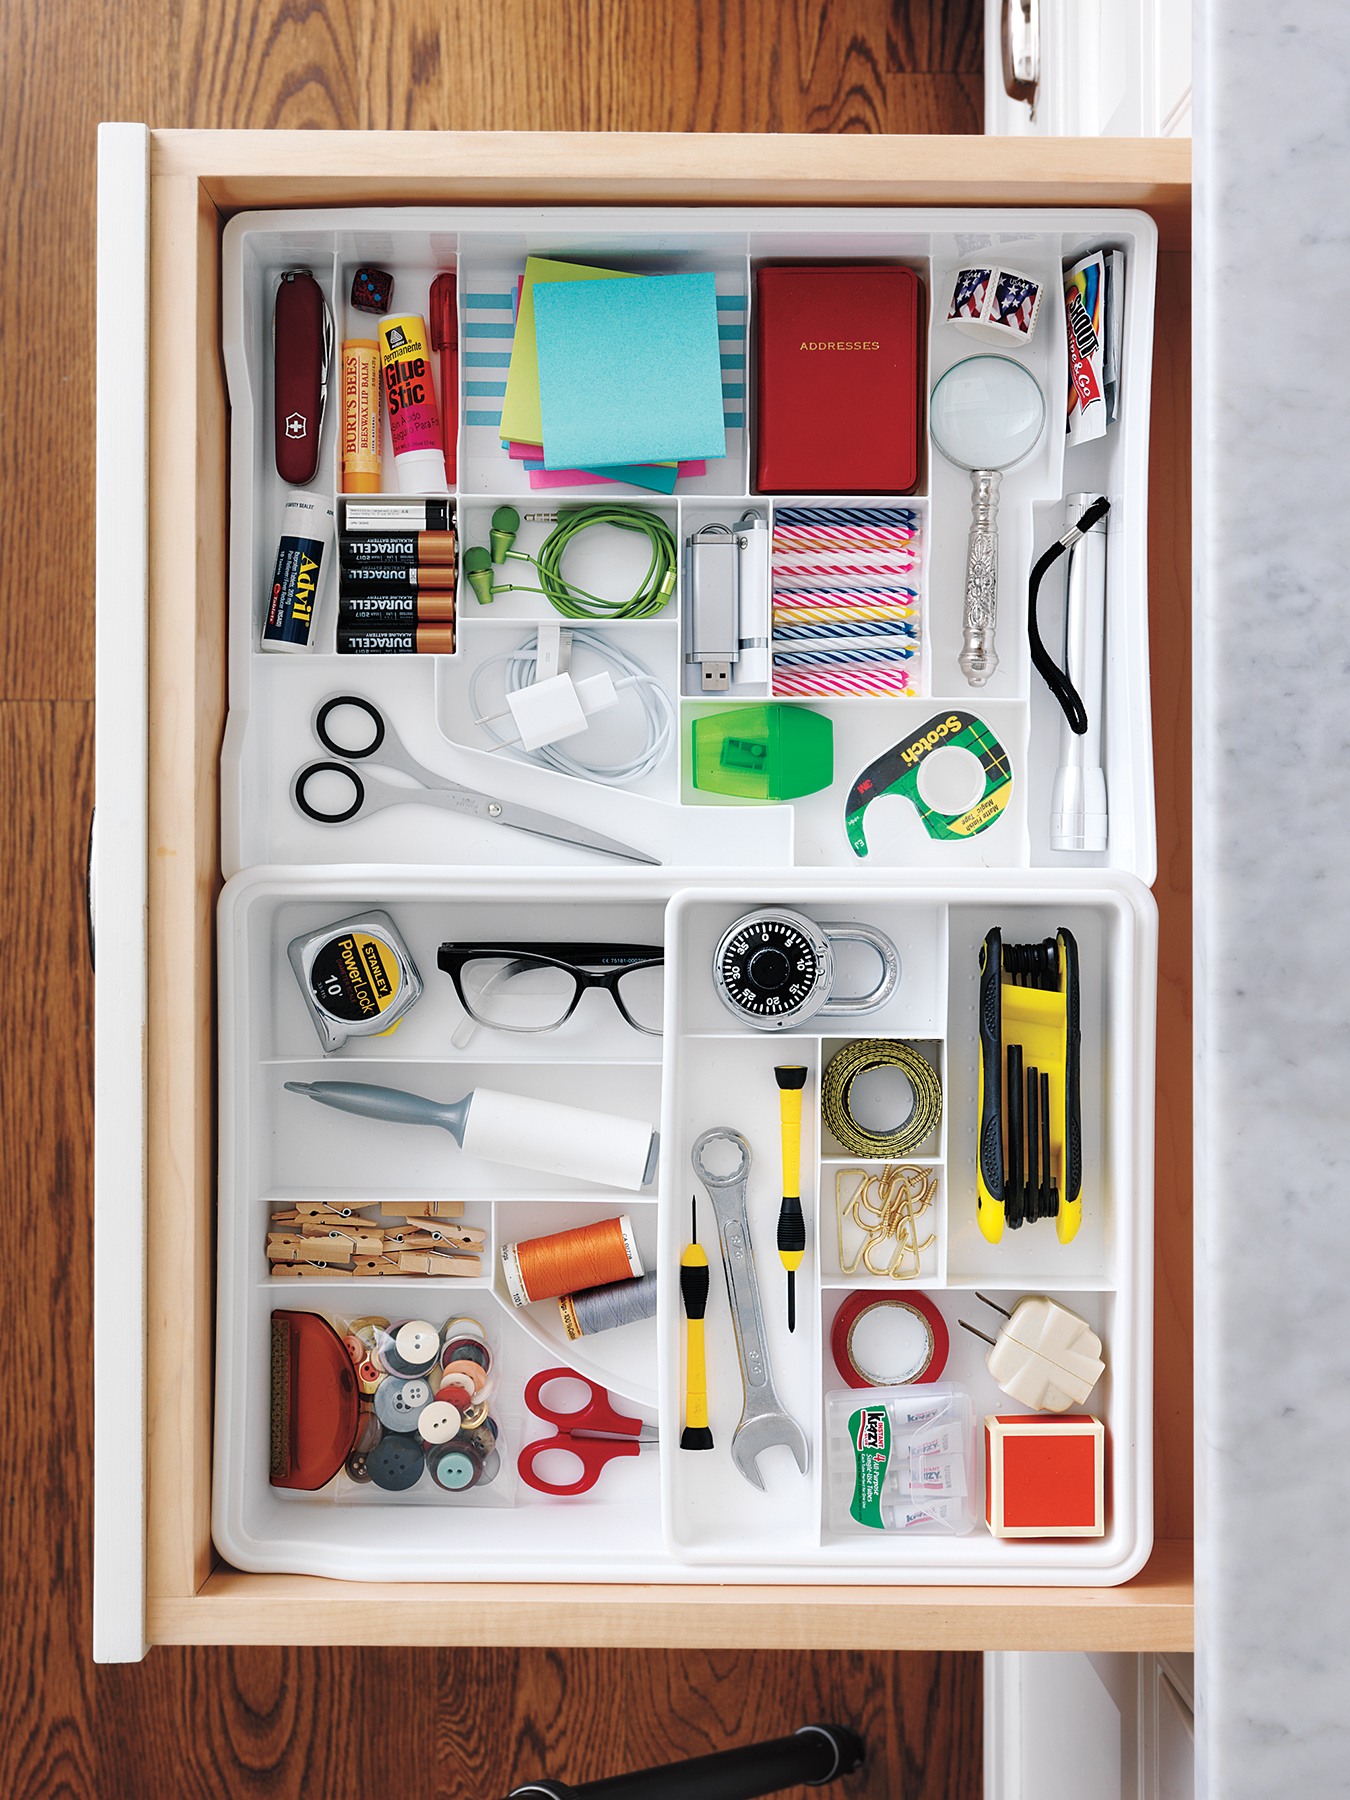 15 Organizing Ideas for Your Drawers - Real Simple on diy home tips, downsizing home tips, painting home tips, buying home tips, work at home tips,